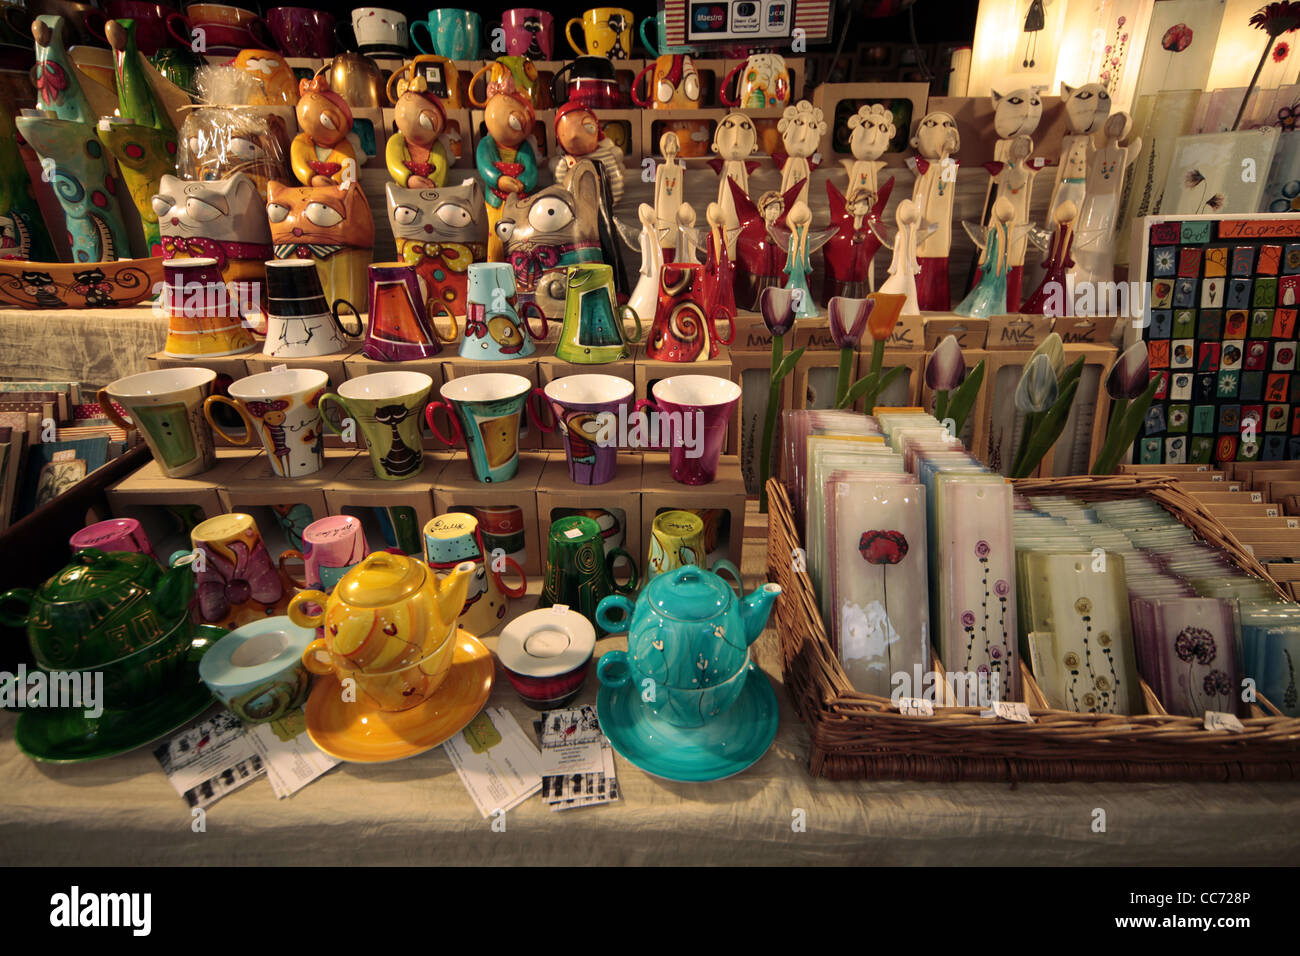 CUPS SAUCERS & TEE POTS ON STALL KRAKOW POLAND 25 December 2011 - Stock Image